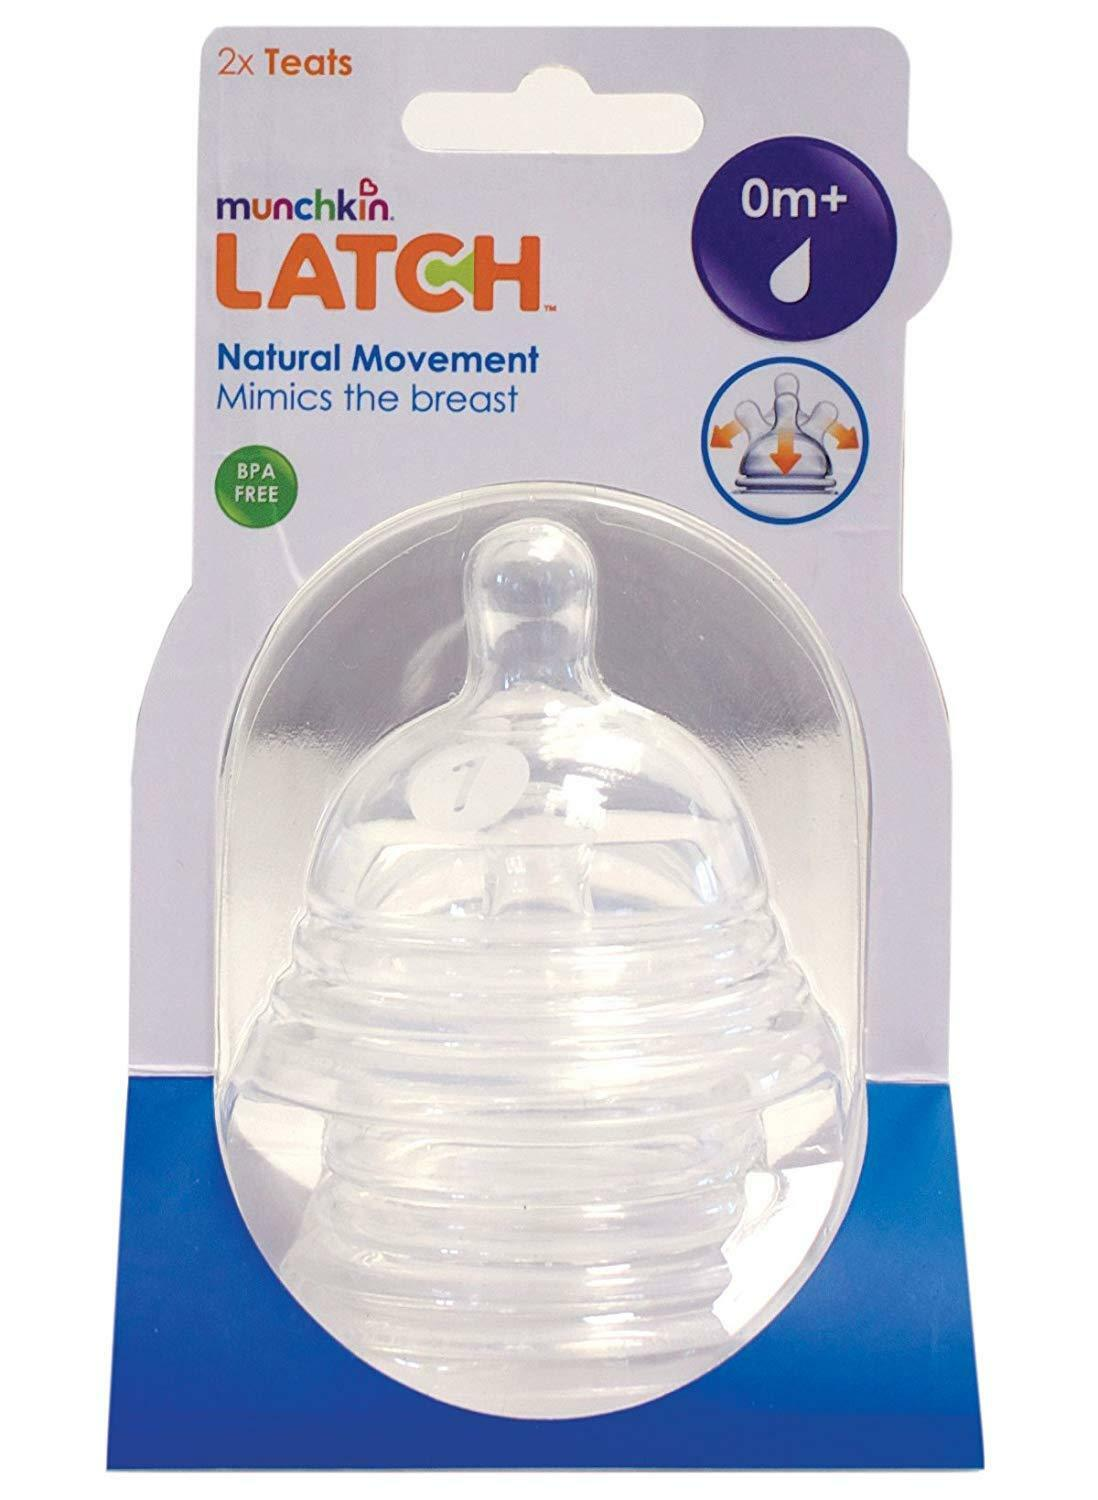 Munchkin Latch Stage 1 Teats - 0 Months+ (1 Pack of 2 Teats)